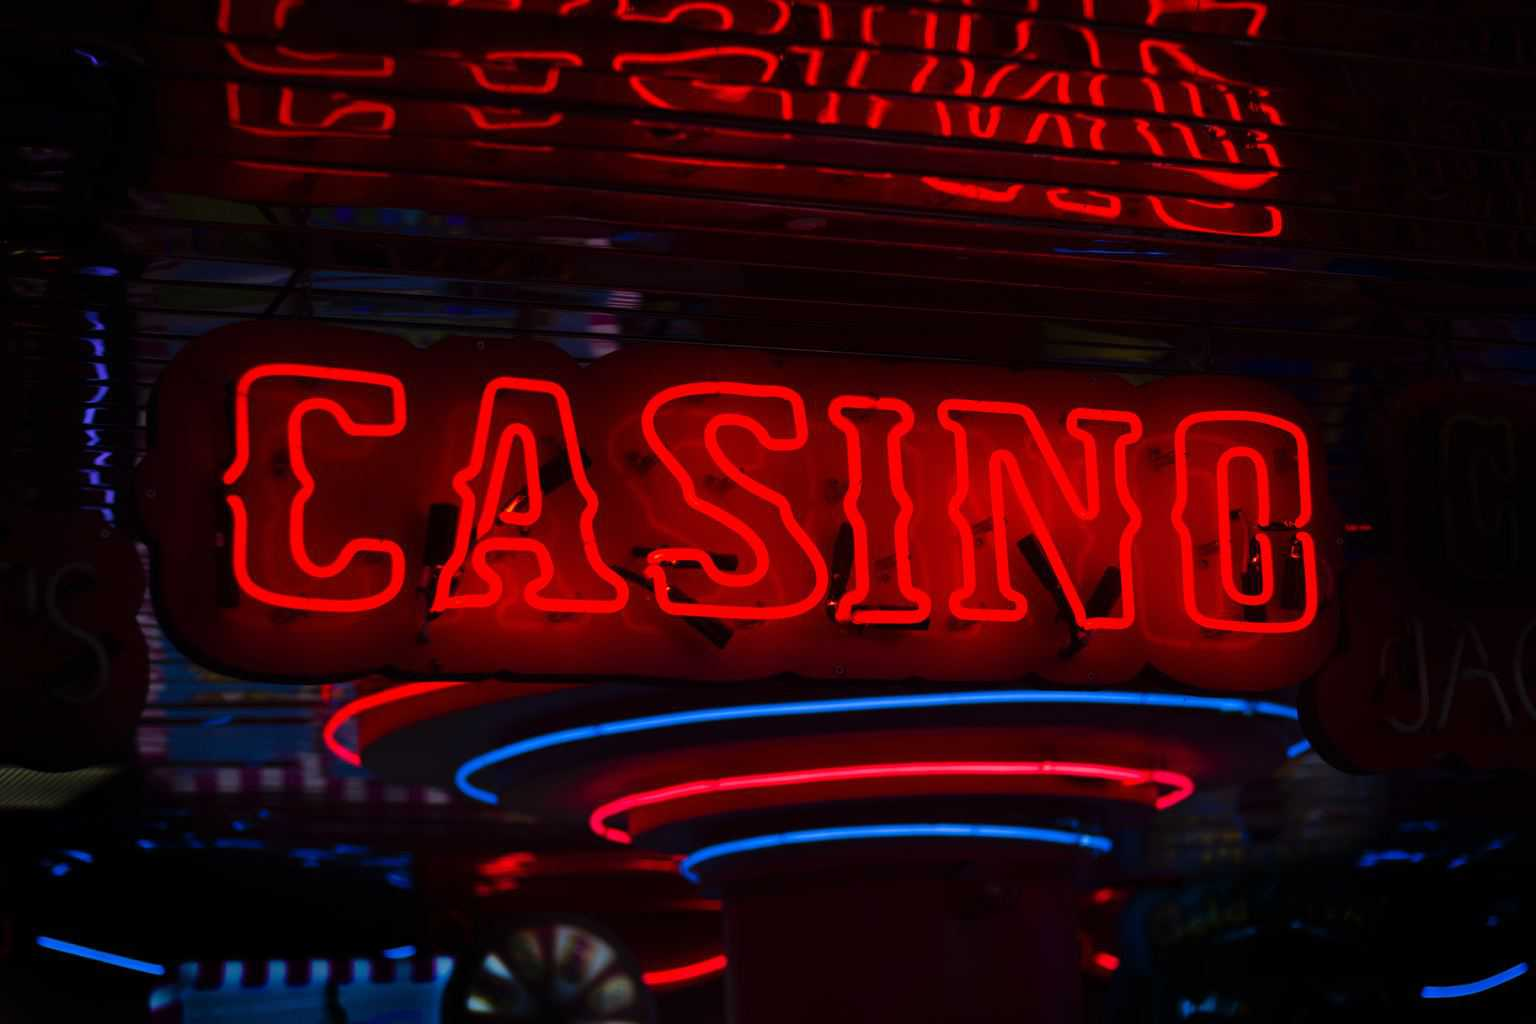 The Top 10 Largest Casinos in the World